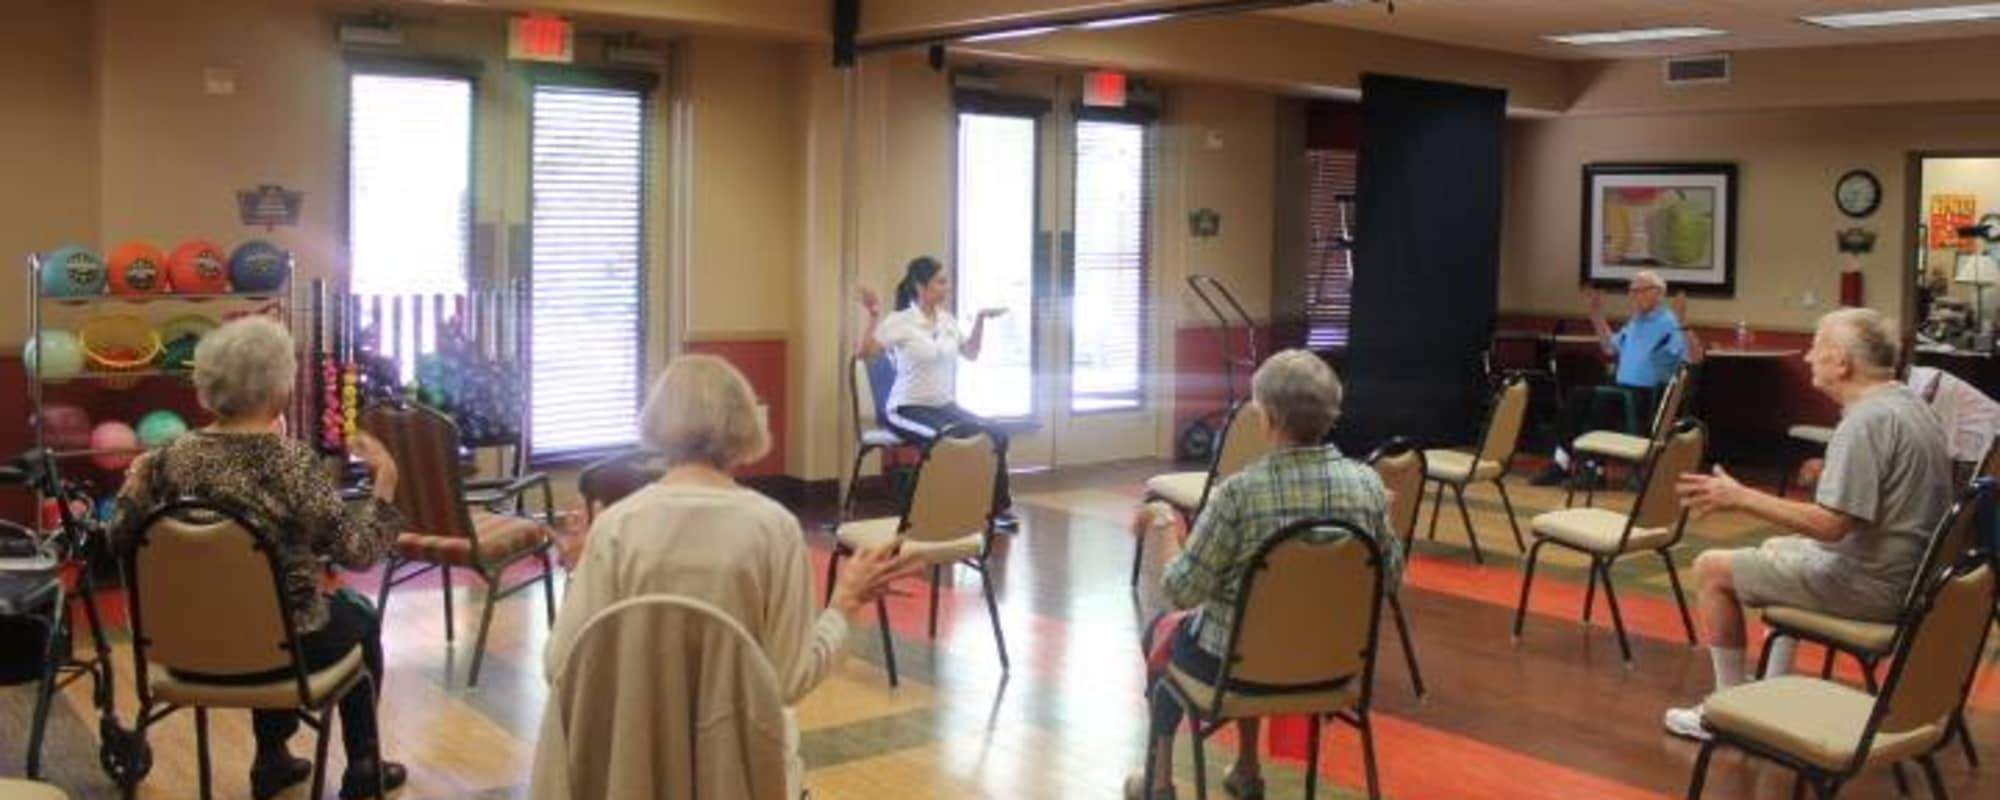 Seniors exercising at McDowell Village in Scottsdale, Arizona